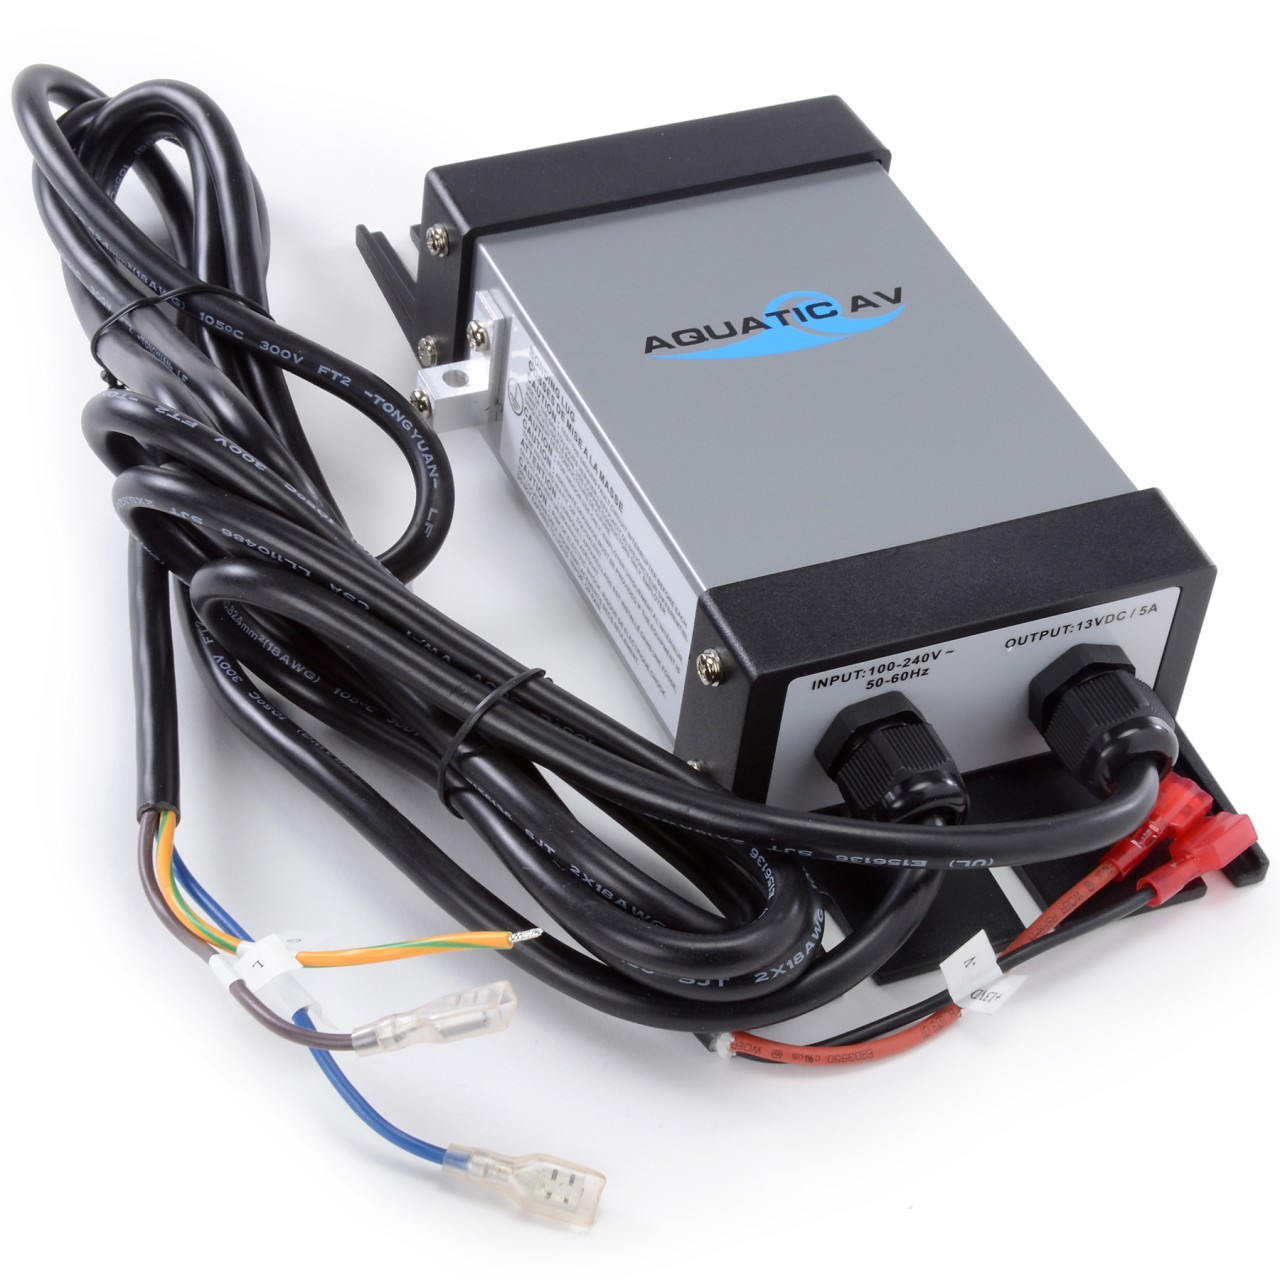 Power Supply for Jacuzzi Stereo